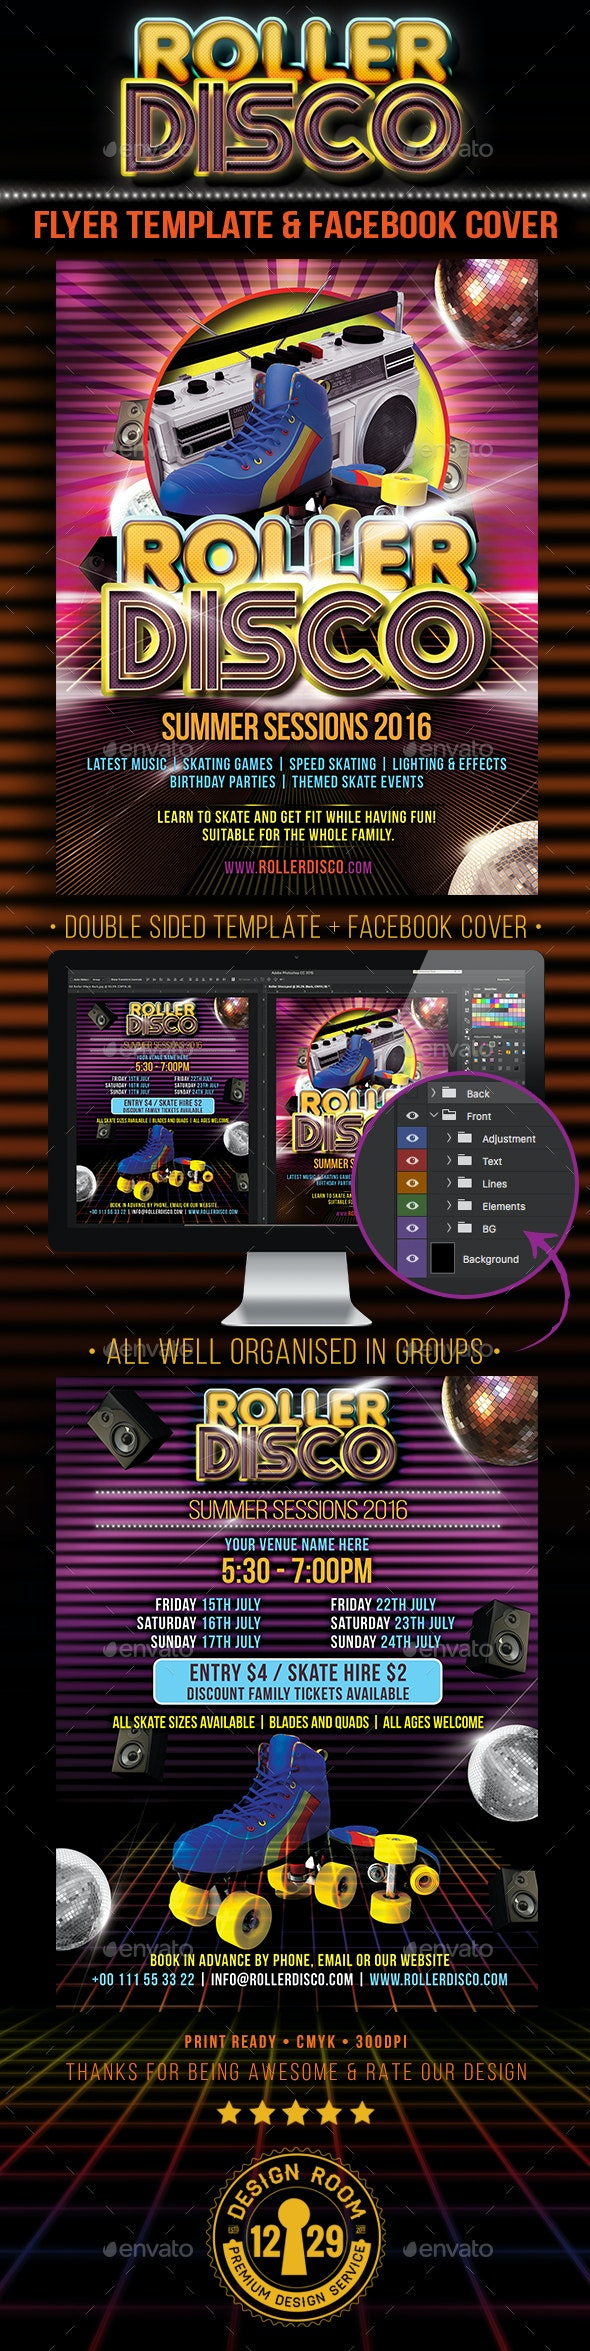 Roller Disco Flyer Template - Events Flyers